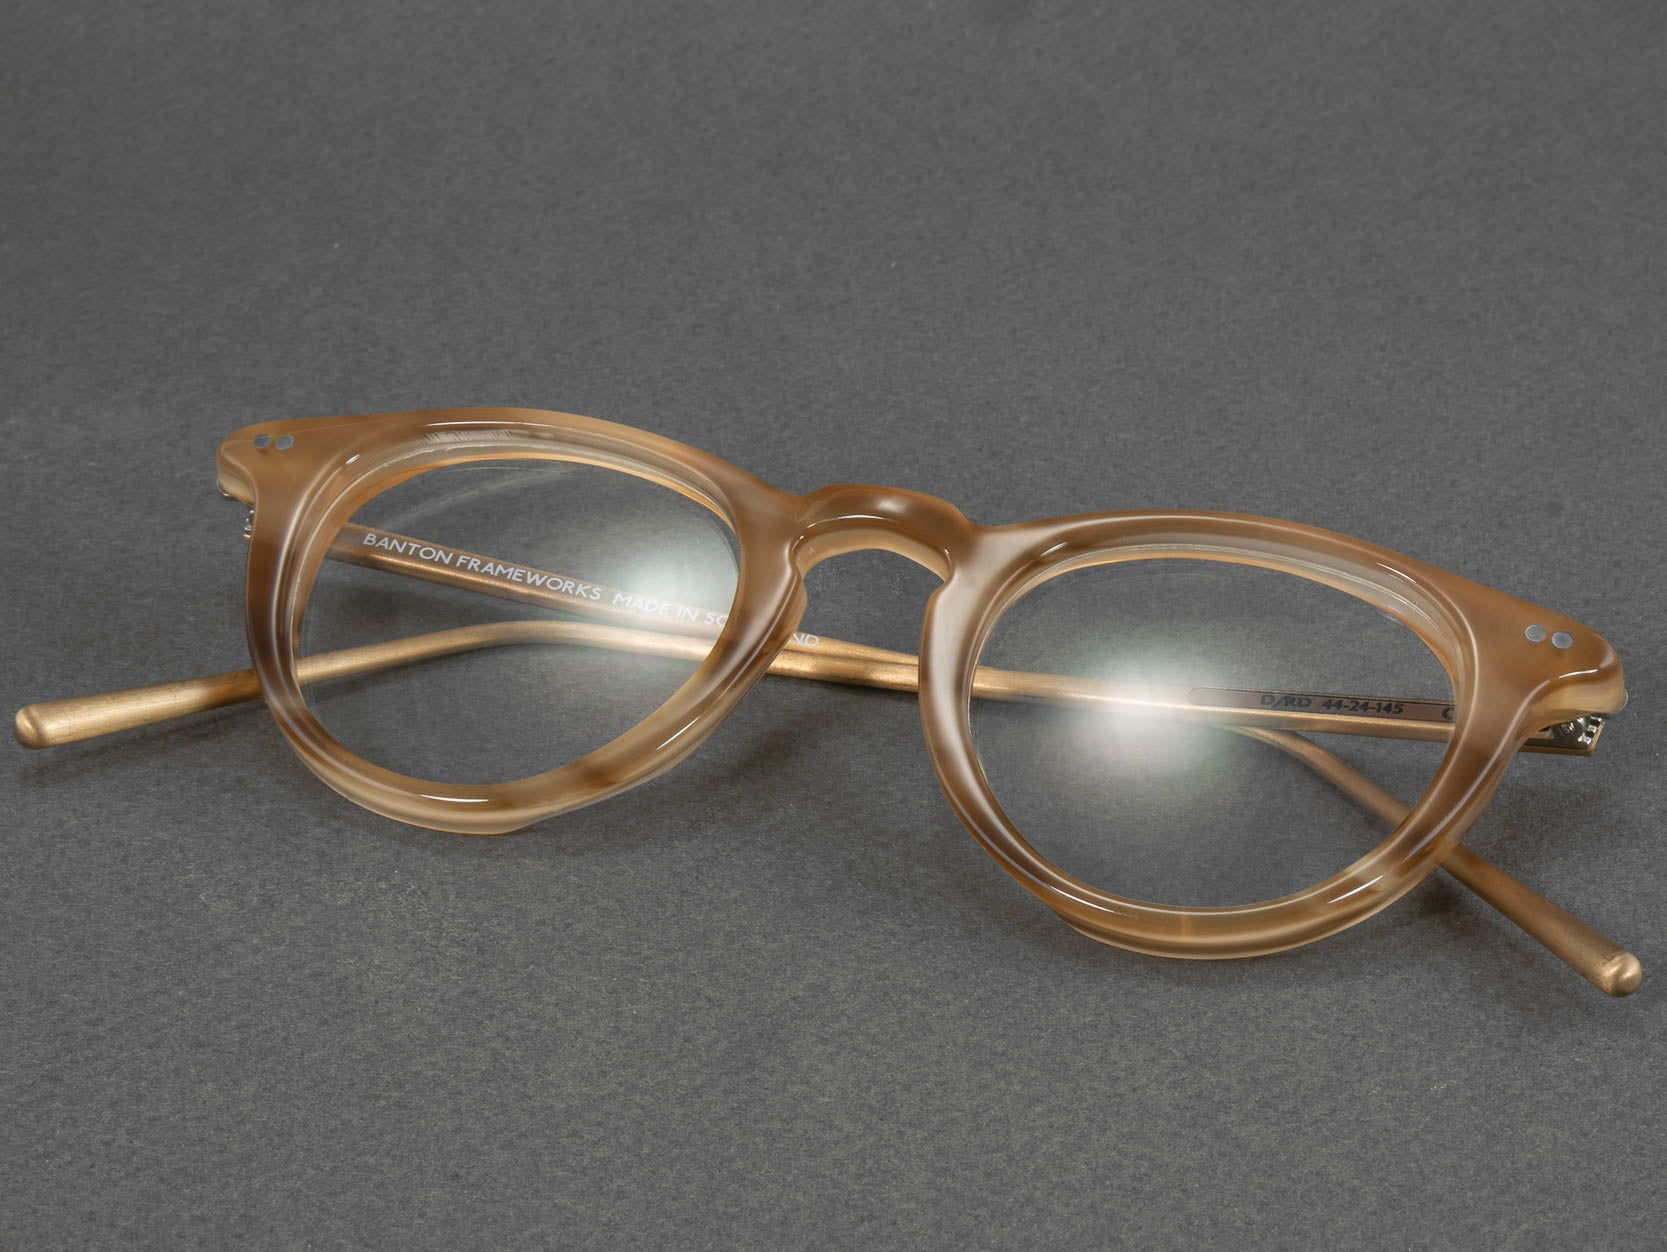 Optical glasses frame d rd folded